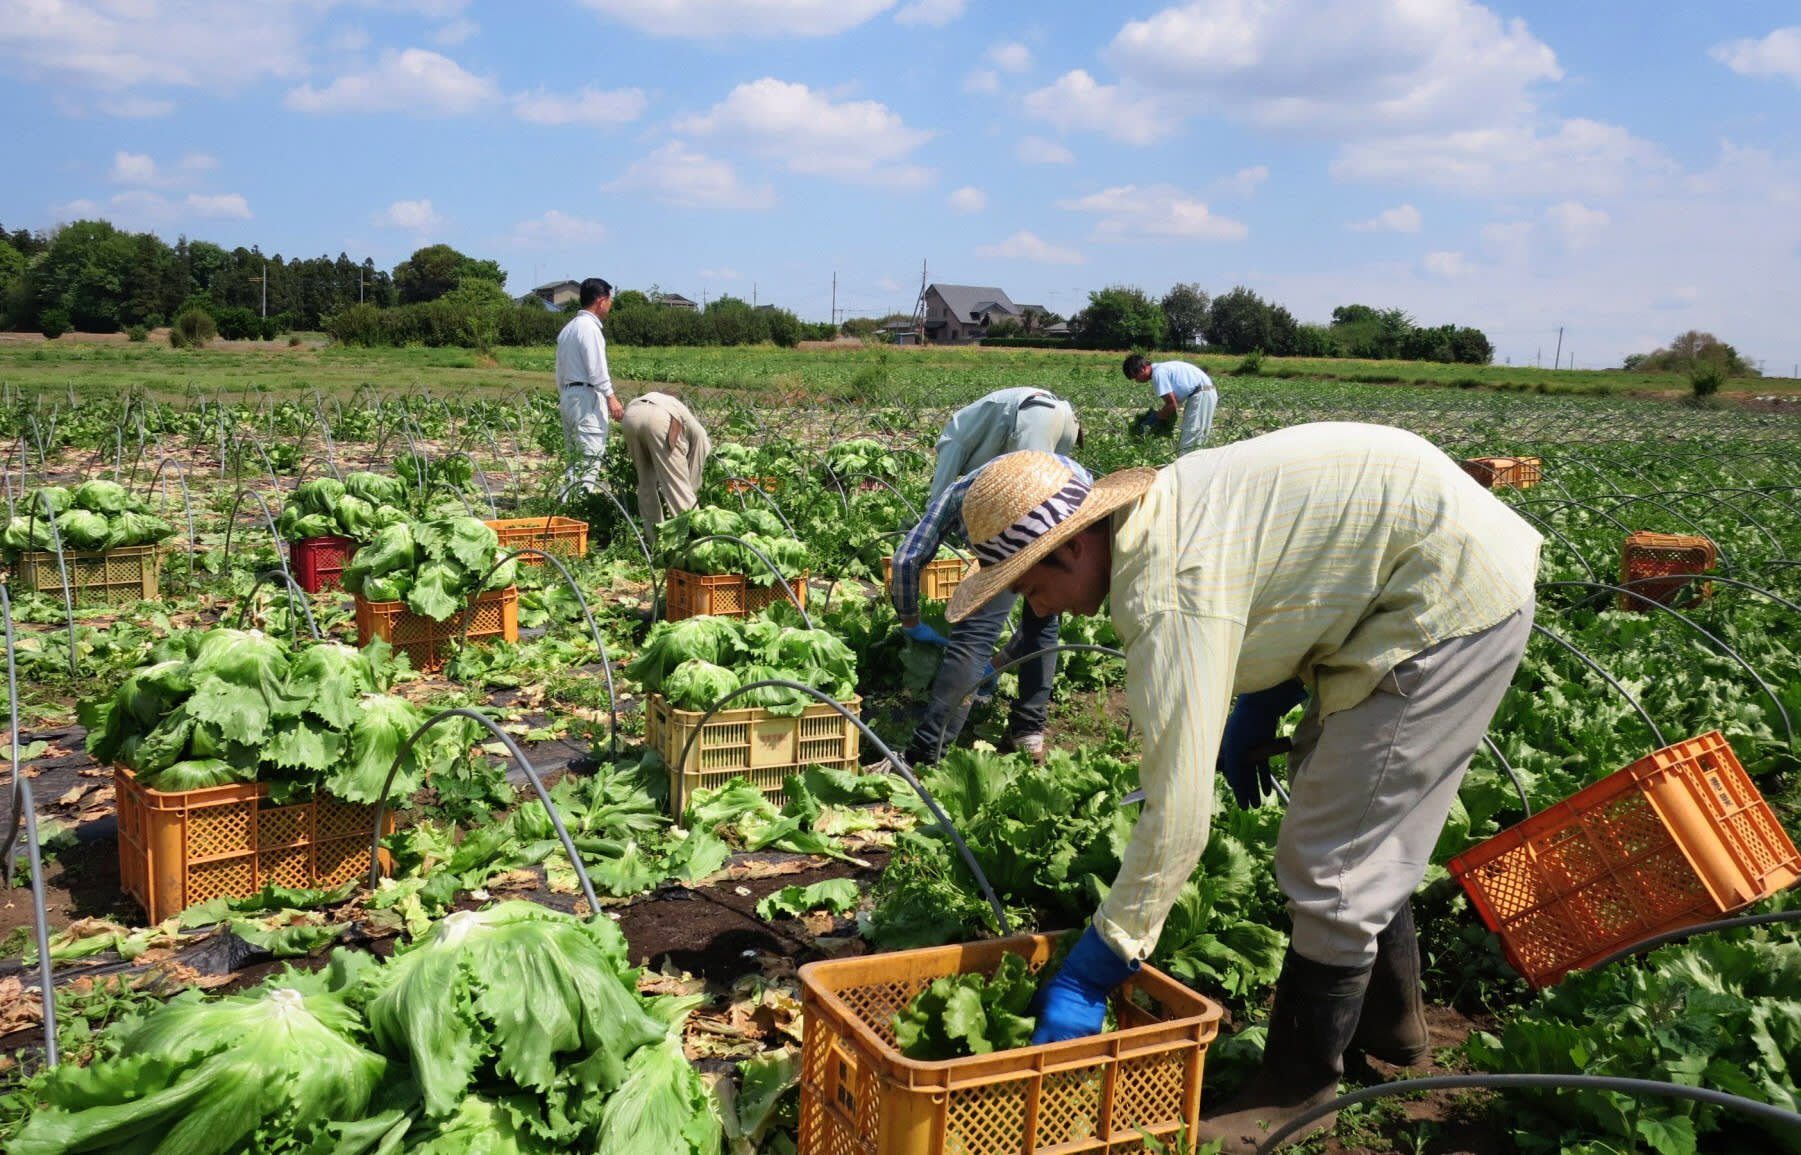 BREAKING: Canada announces 3 Year Permanent Residence Program for Agri-Food Workers